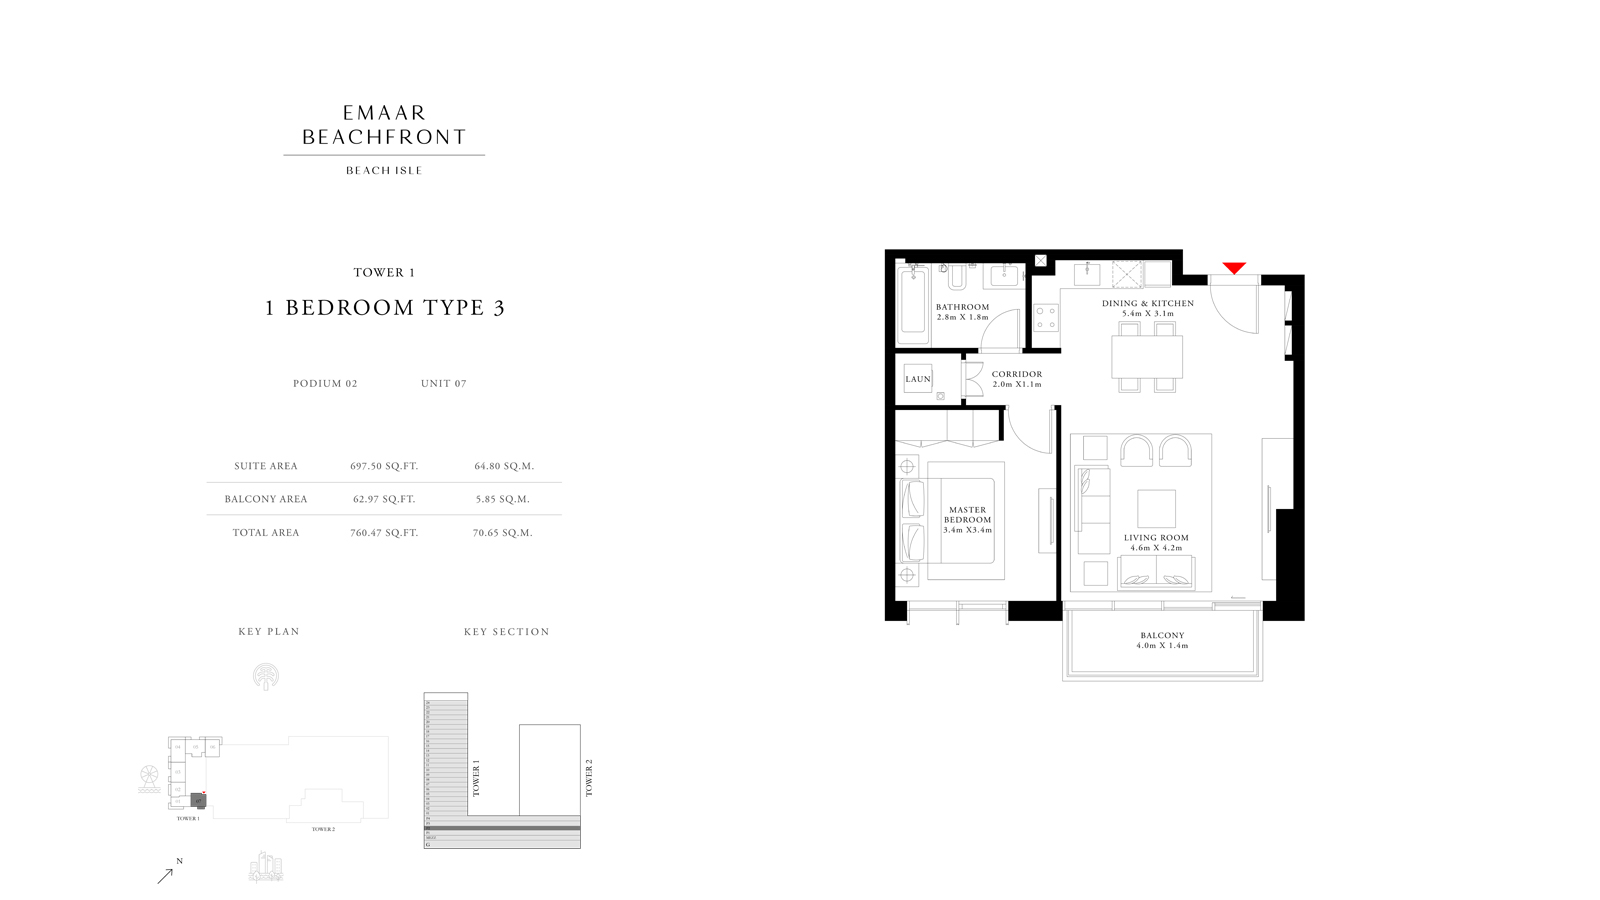 1 Bedroom Type 3 Tower 1, Size 760    sq. ft.